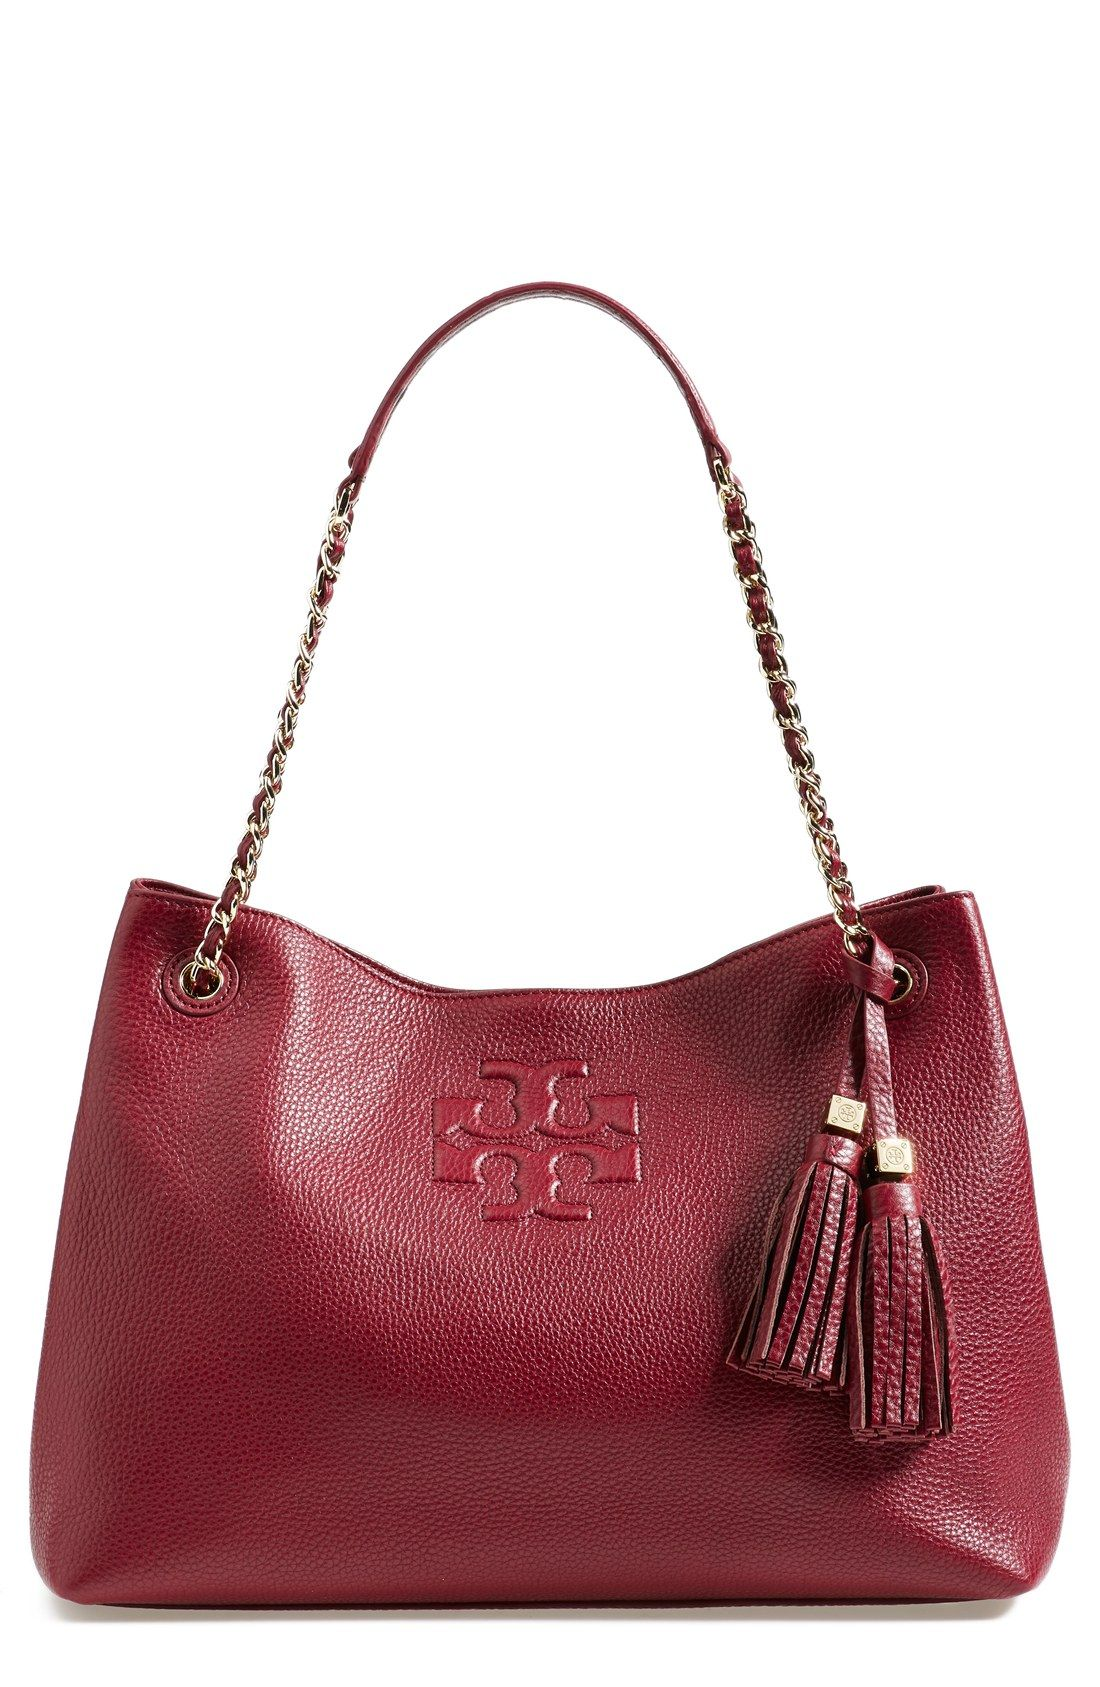 2321ef87e07 Lusting over this rich red Tory Burch tote, complete with tassels ...